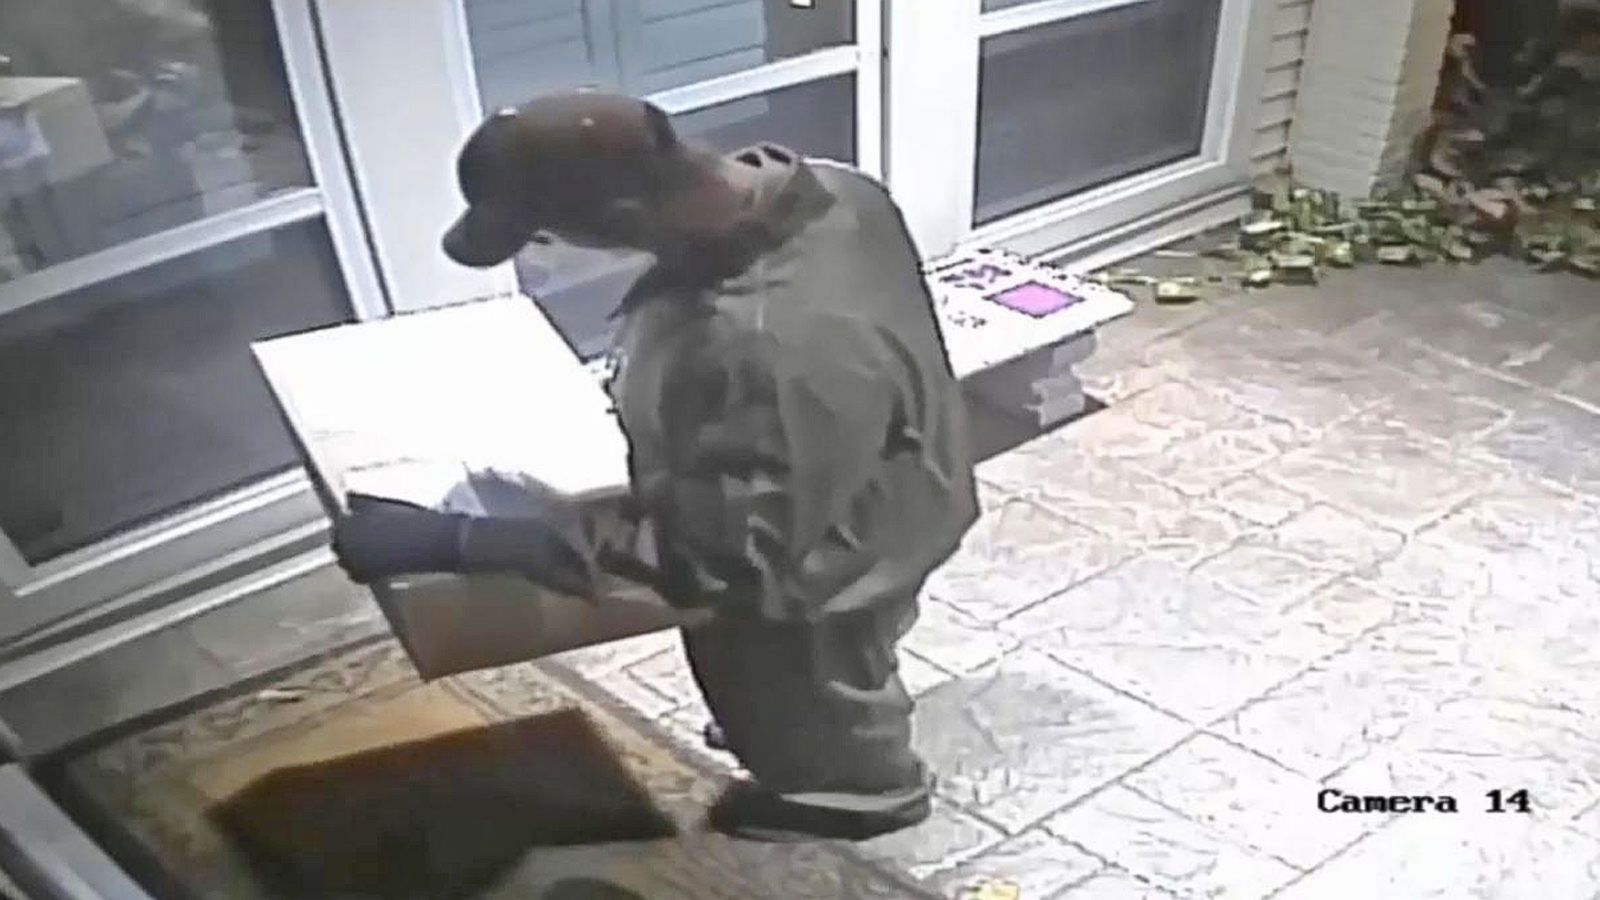 VIDEO: Armed Thieves Pose as UPS Delivery Man to Force Their Way Into Home